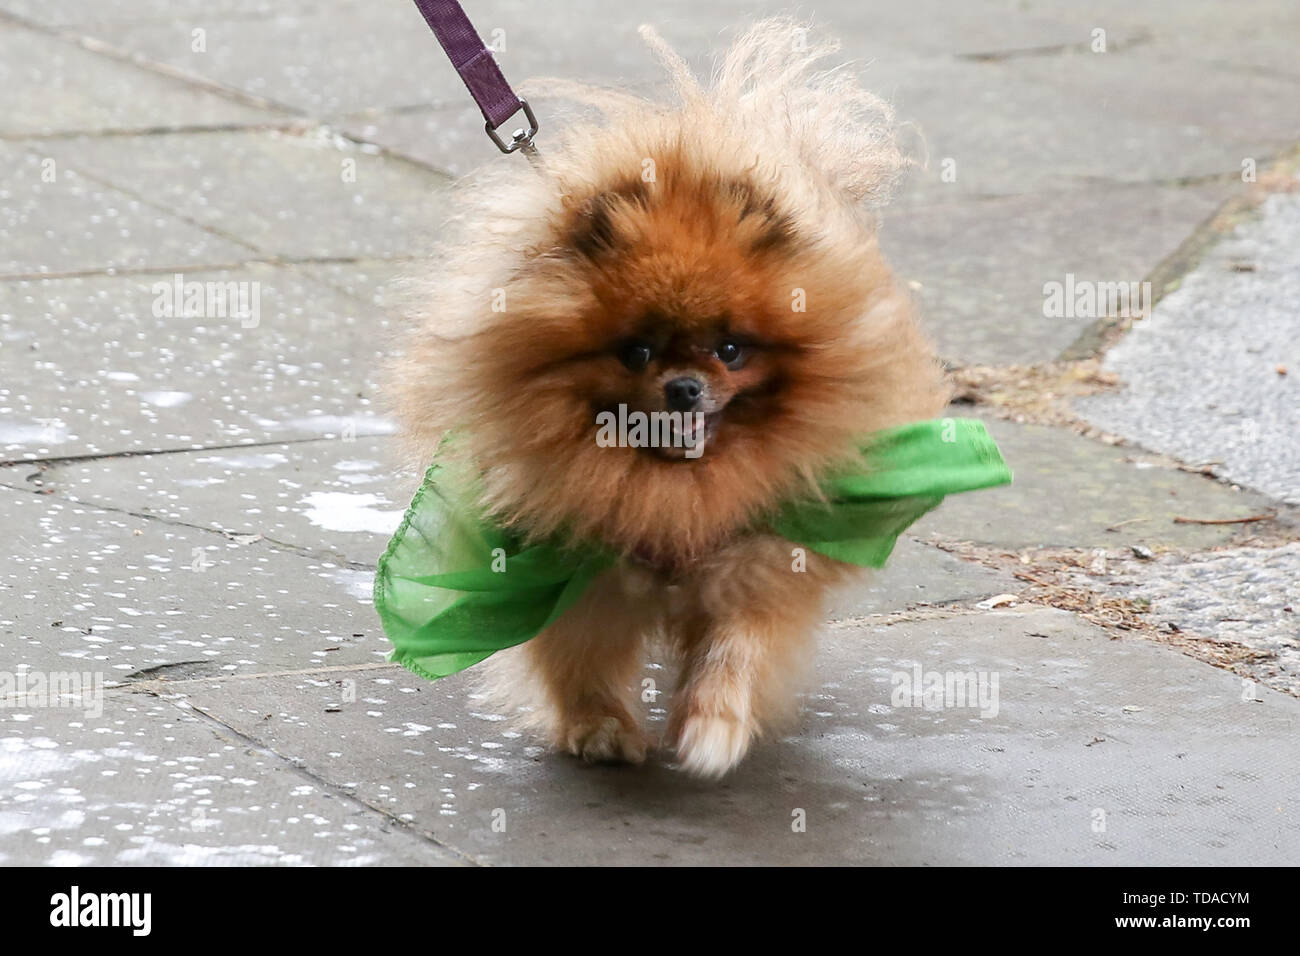 North Kensington, West London. UK 14 Jun 2019 - 'Missy' wearing a green ribbon arrives at St Helen's Church to commemorate the second anniversary of the Grenfell Tower fire service. On 14 June 2017, just before 1:00Êam a fire broke out in the kitchen of the fourth floor flat at the 24-storey residential tower block in North Kensington, West London, which took the lives of 72 people. More than 70 others were injured and 223 people escaped.  Credit: Dinendra Haria/Alamy Live News - Stock Image